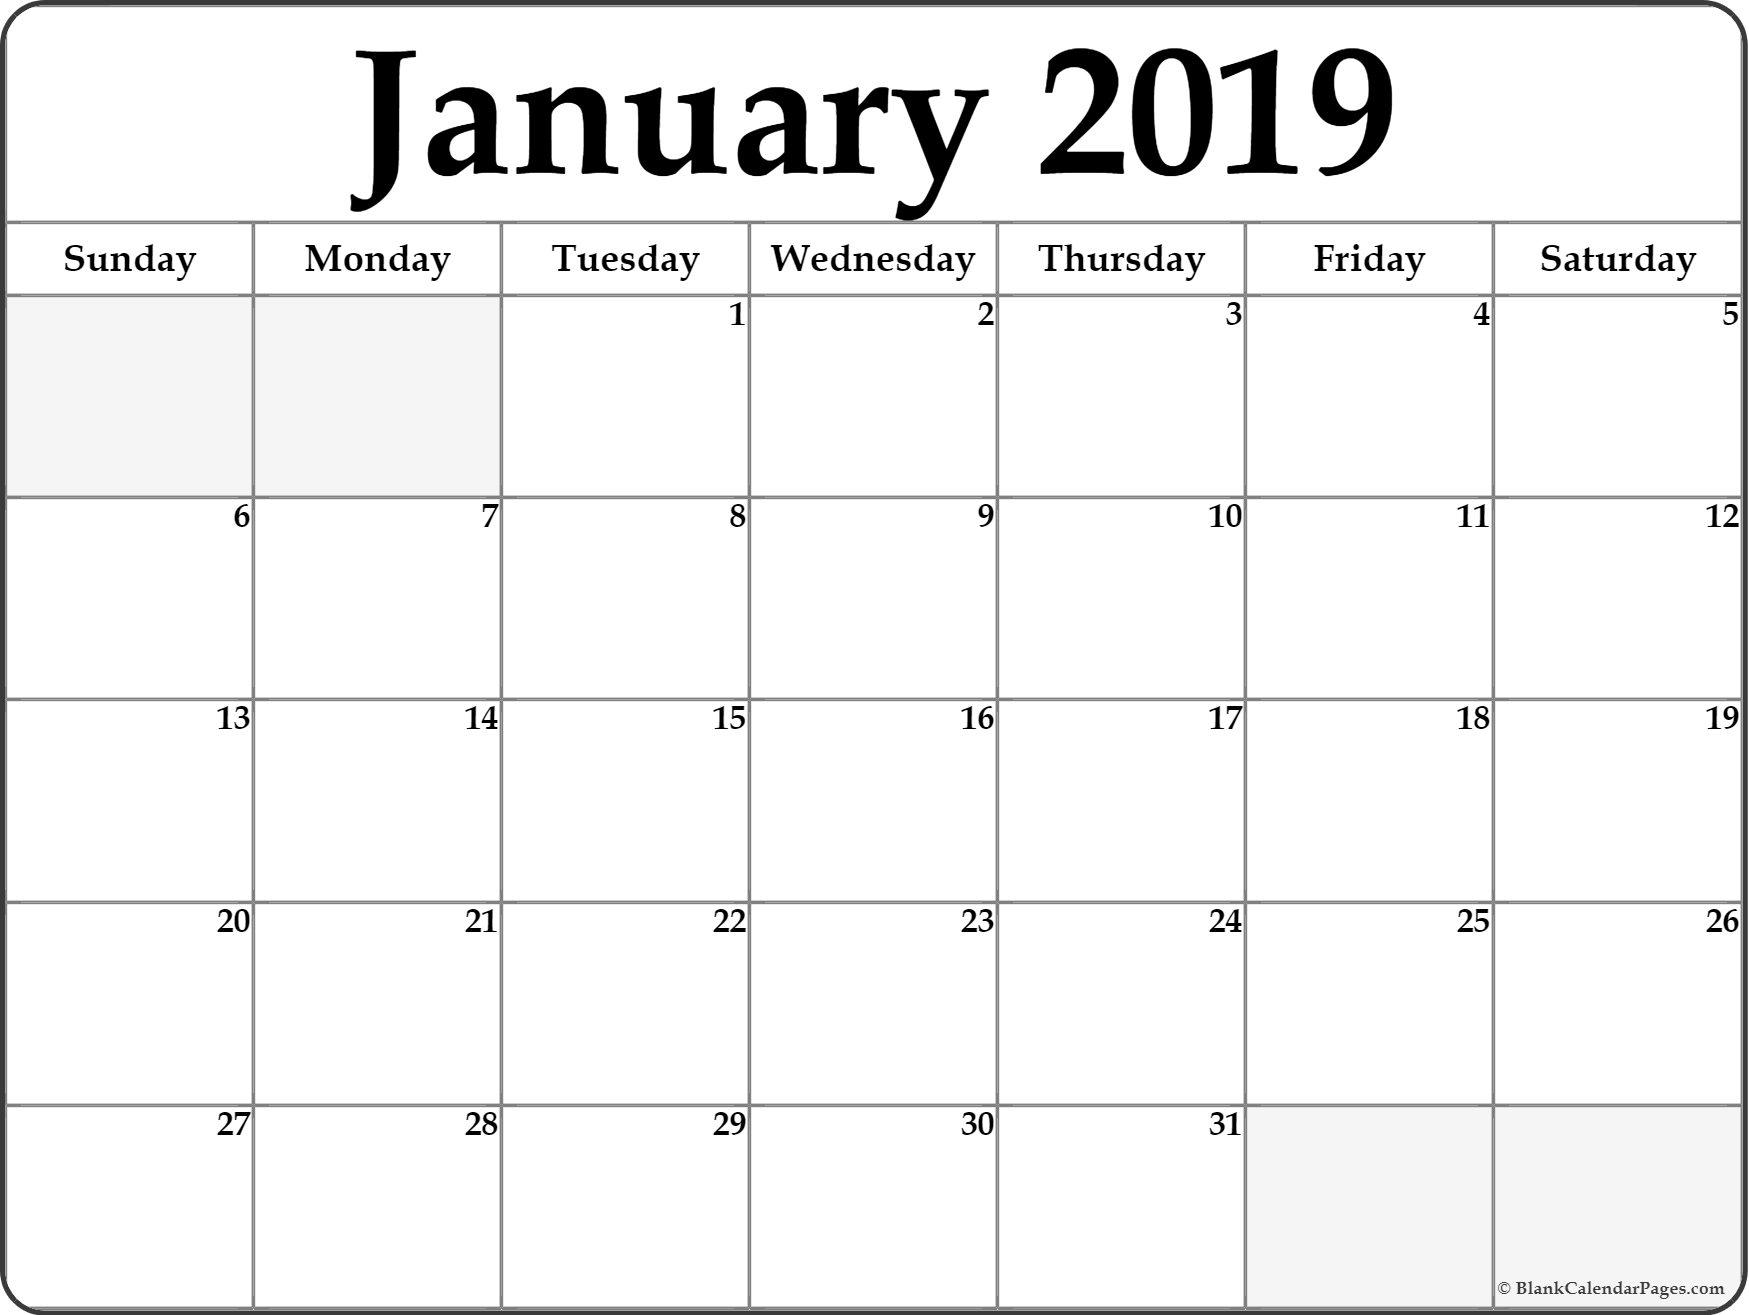 2019 January Calendar To do list